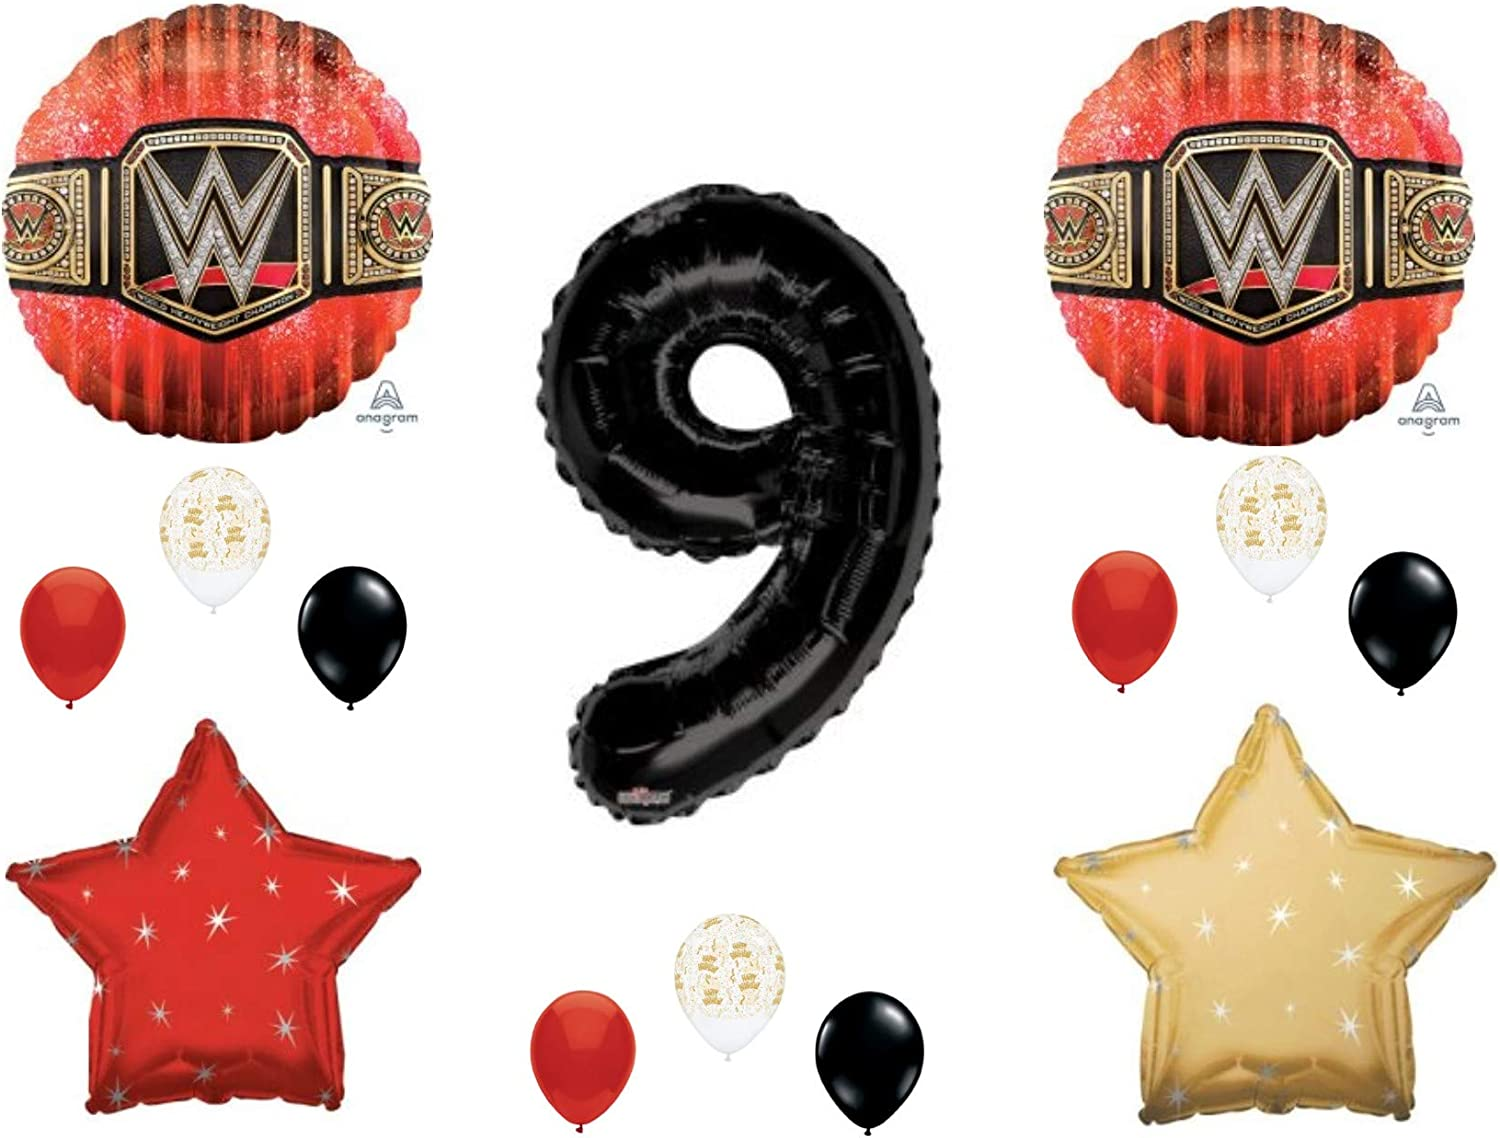 WWE Birthday Party Supplies Balloon Bouquet Select from Age 1 to 9